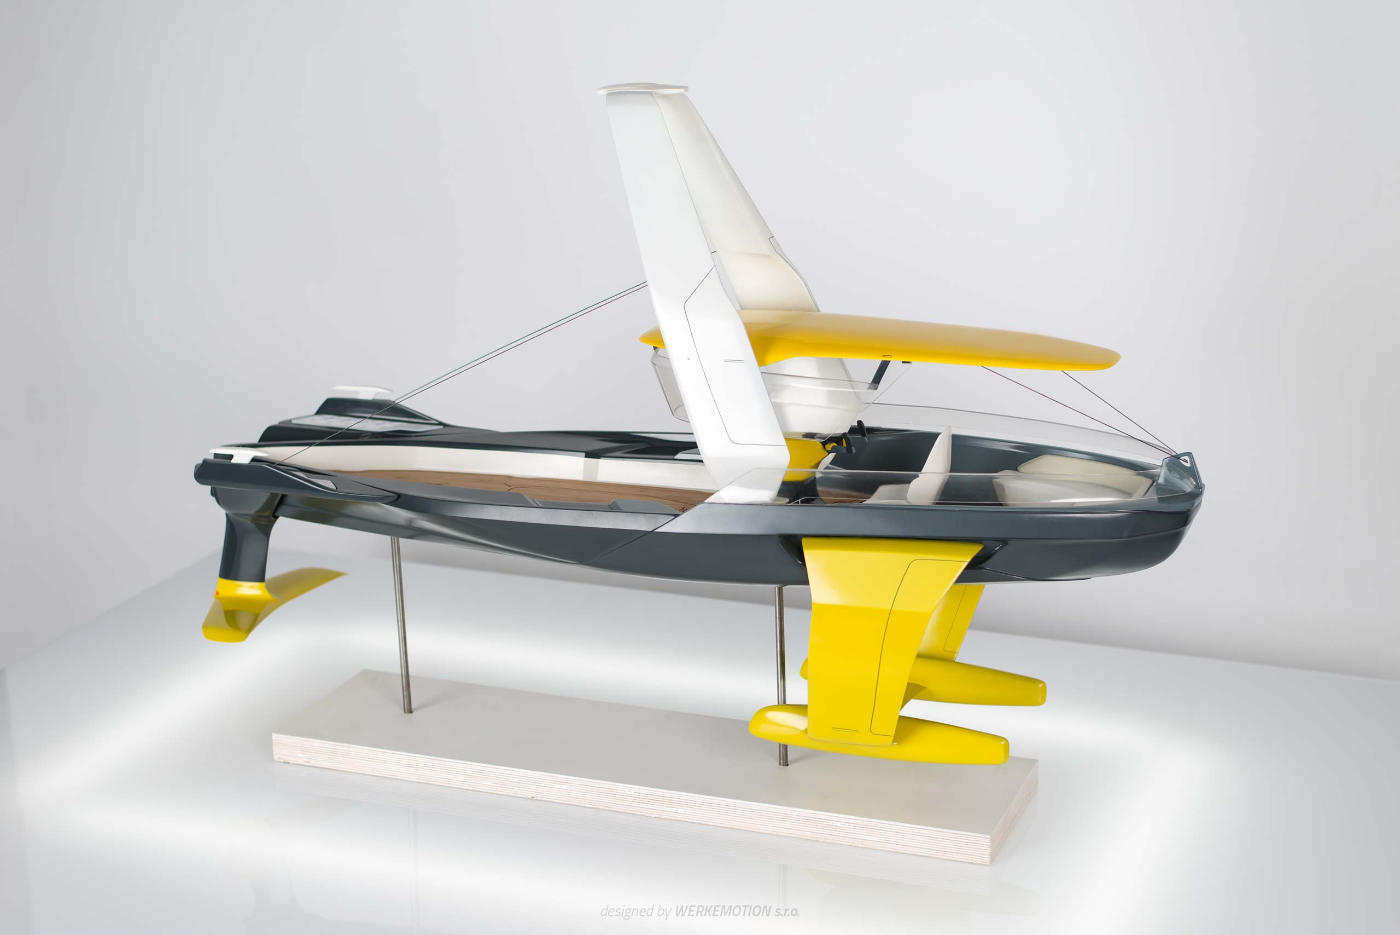 STRIDER - Hydrofoil concept - Naval design by WERKEMOTION design studio